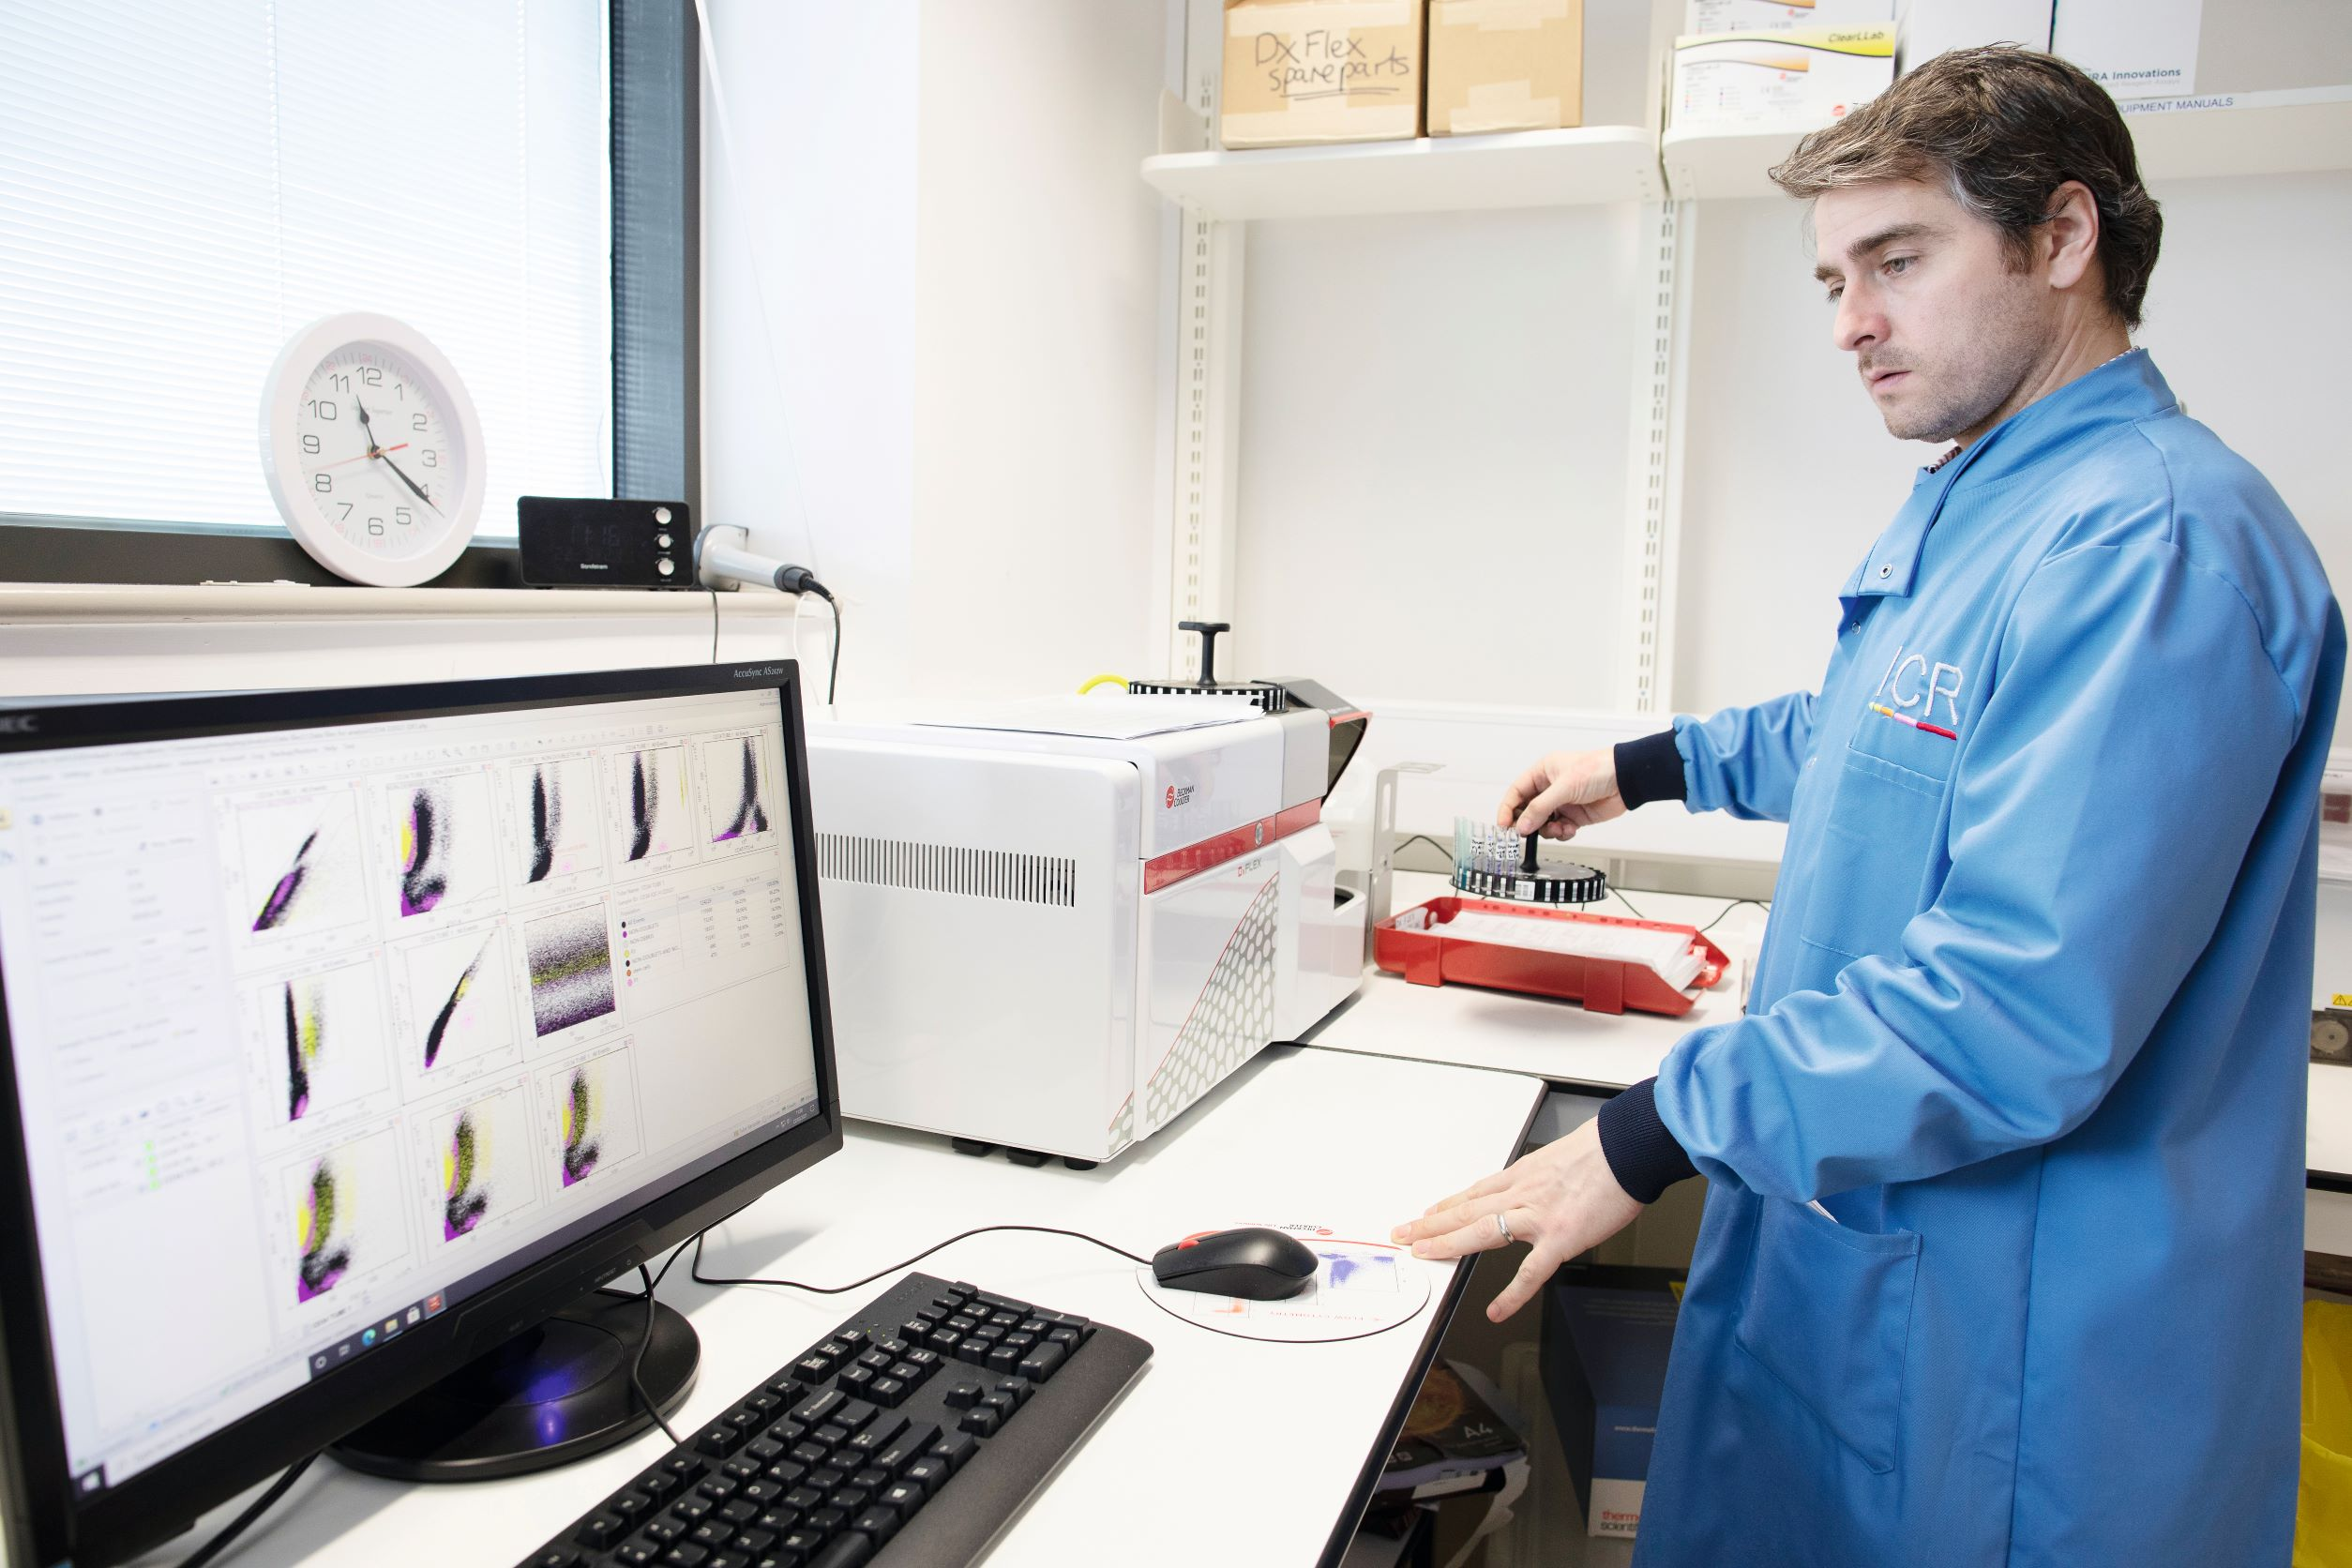 The new facilities for immunophenotyping